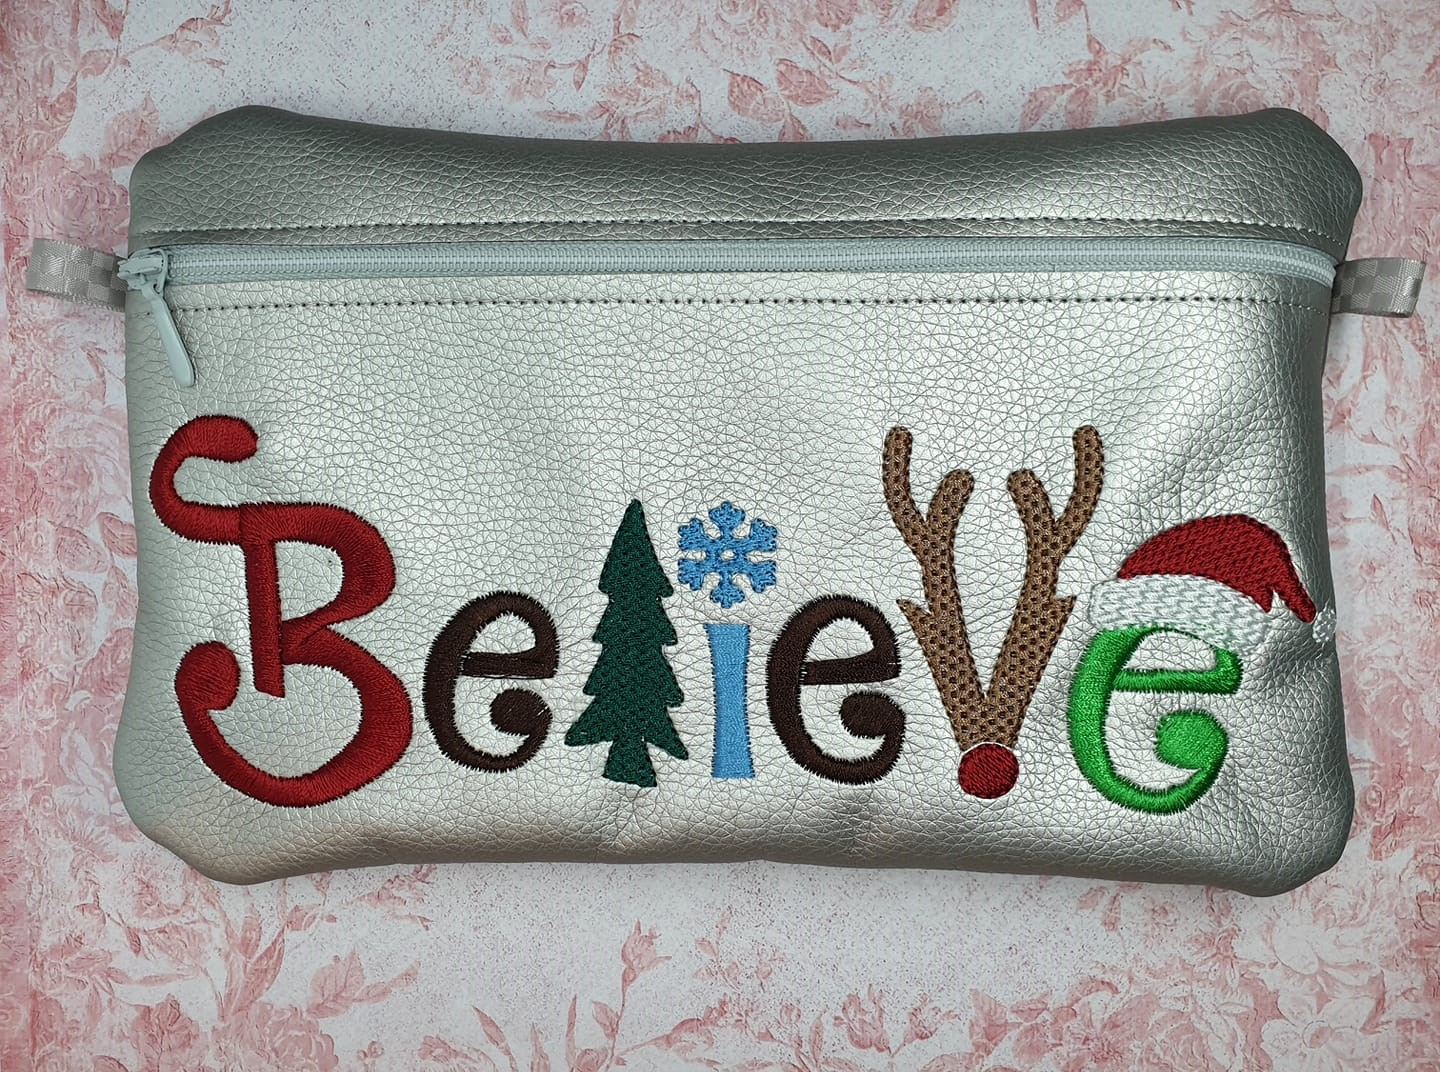 Believe Character Zipper Bag Embroidery Design (2 sizes, unlined)